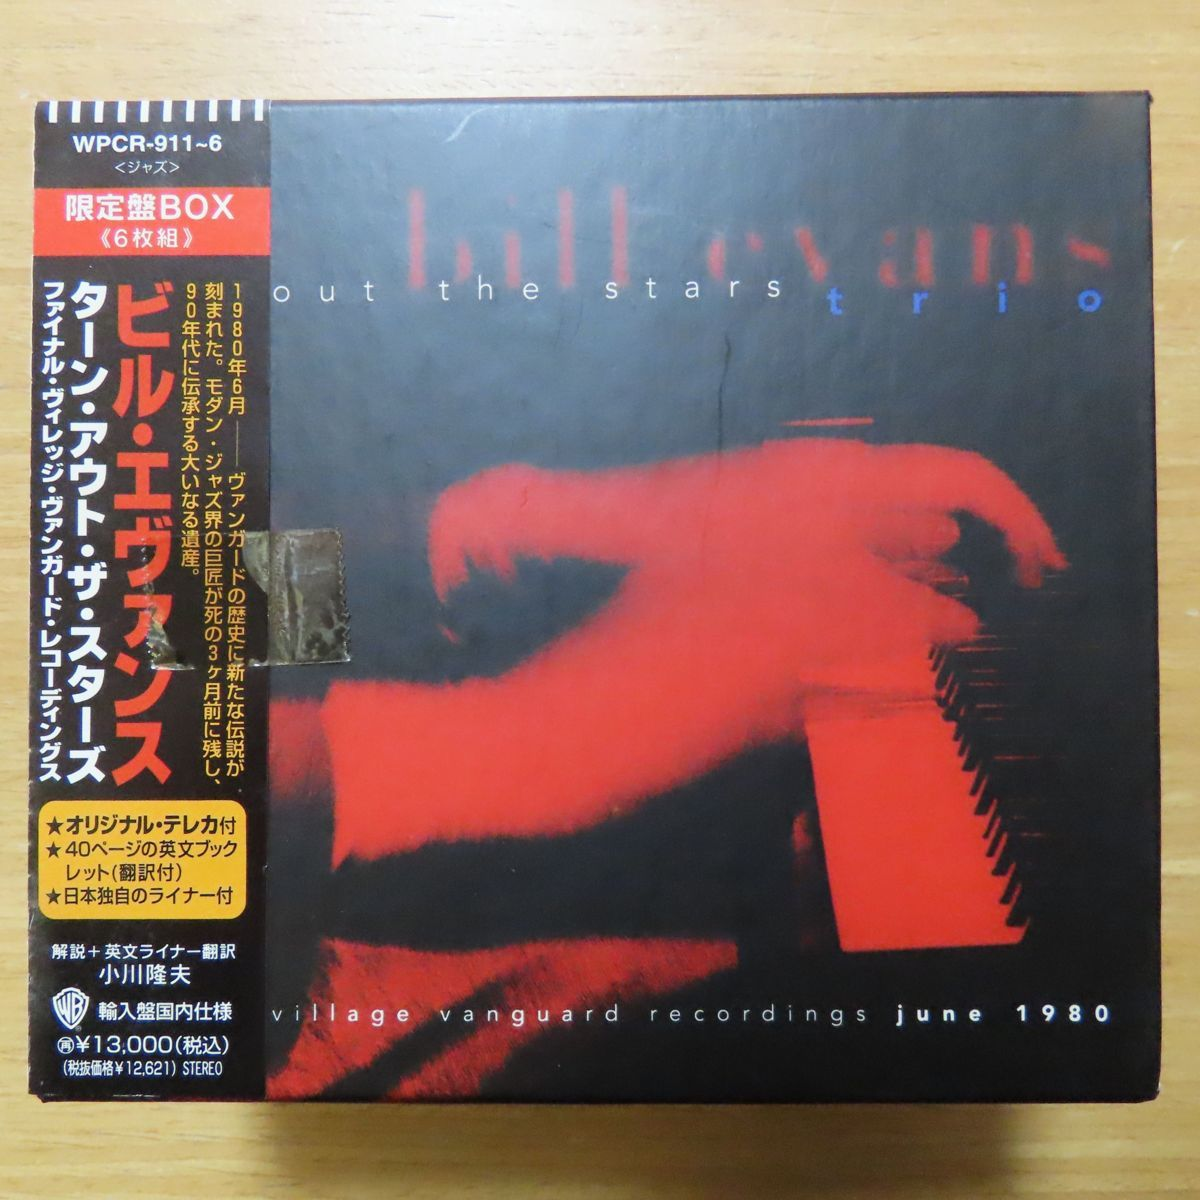 34036046;【6CDBOX】ビル・エヴァンス / turn out the stars~the finai village vanguard recordings